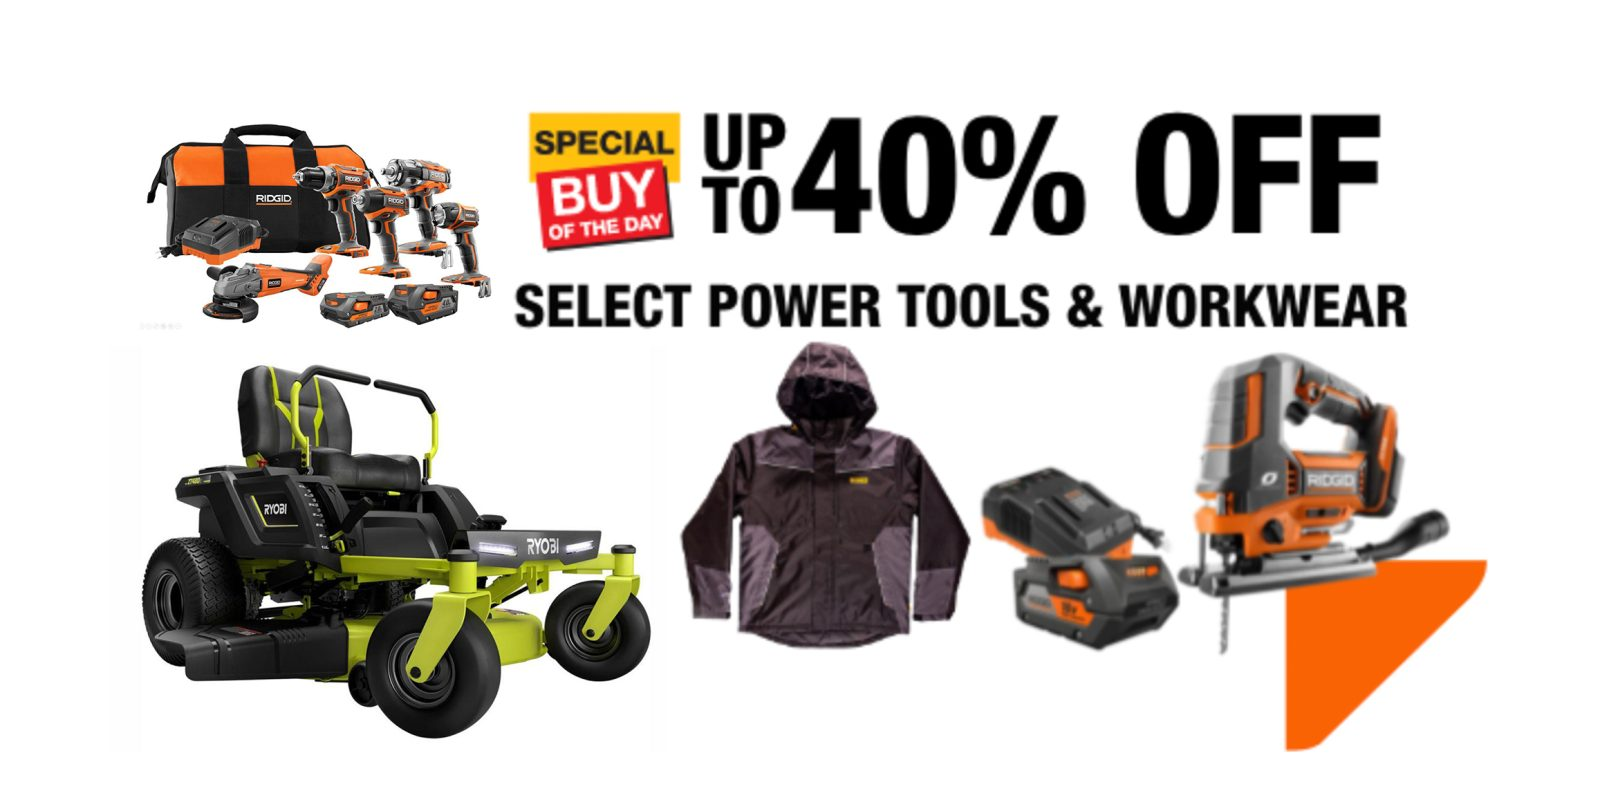 Home Depot's latest sale includes electric outdoor tools, DIY essentials, more